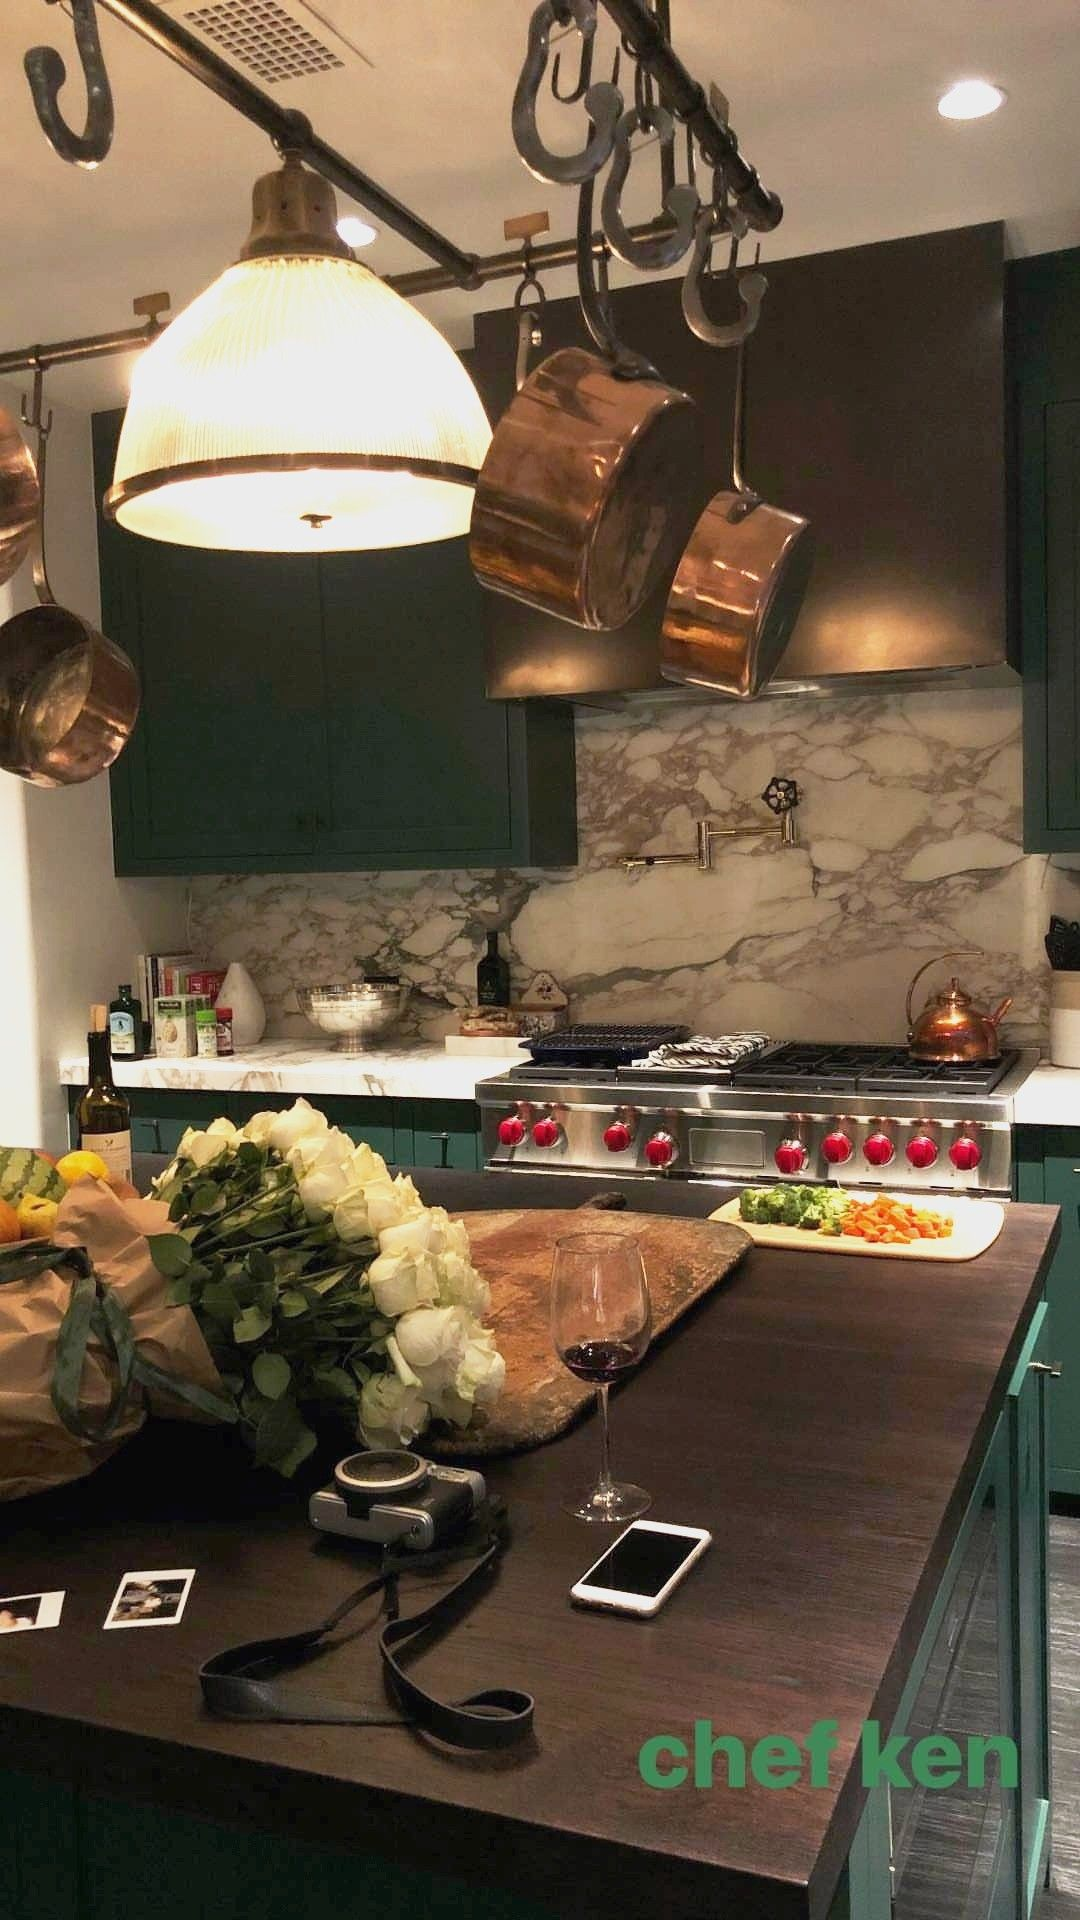 Kendal Jenner S Kitchen Home Decor Decor Jenner House